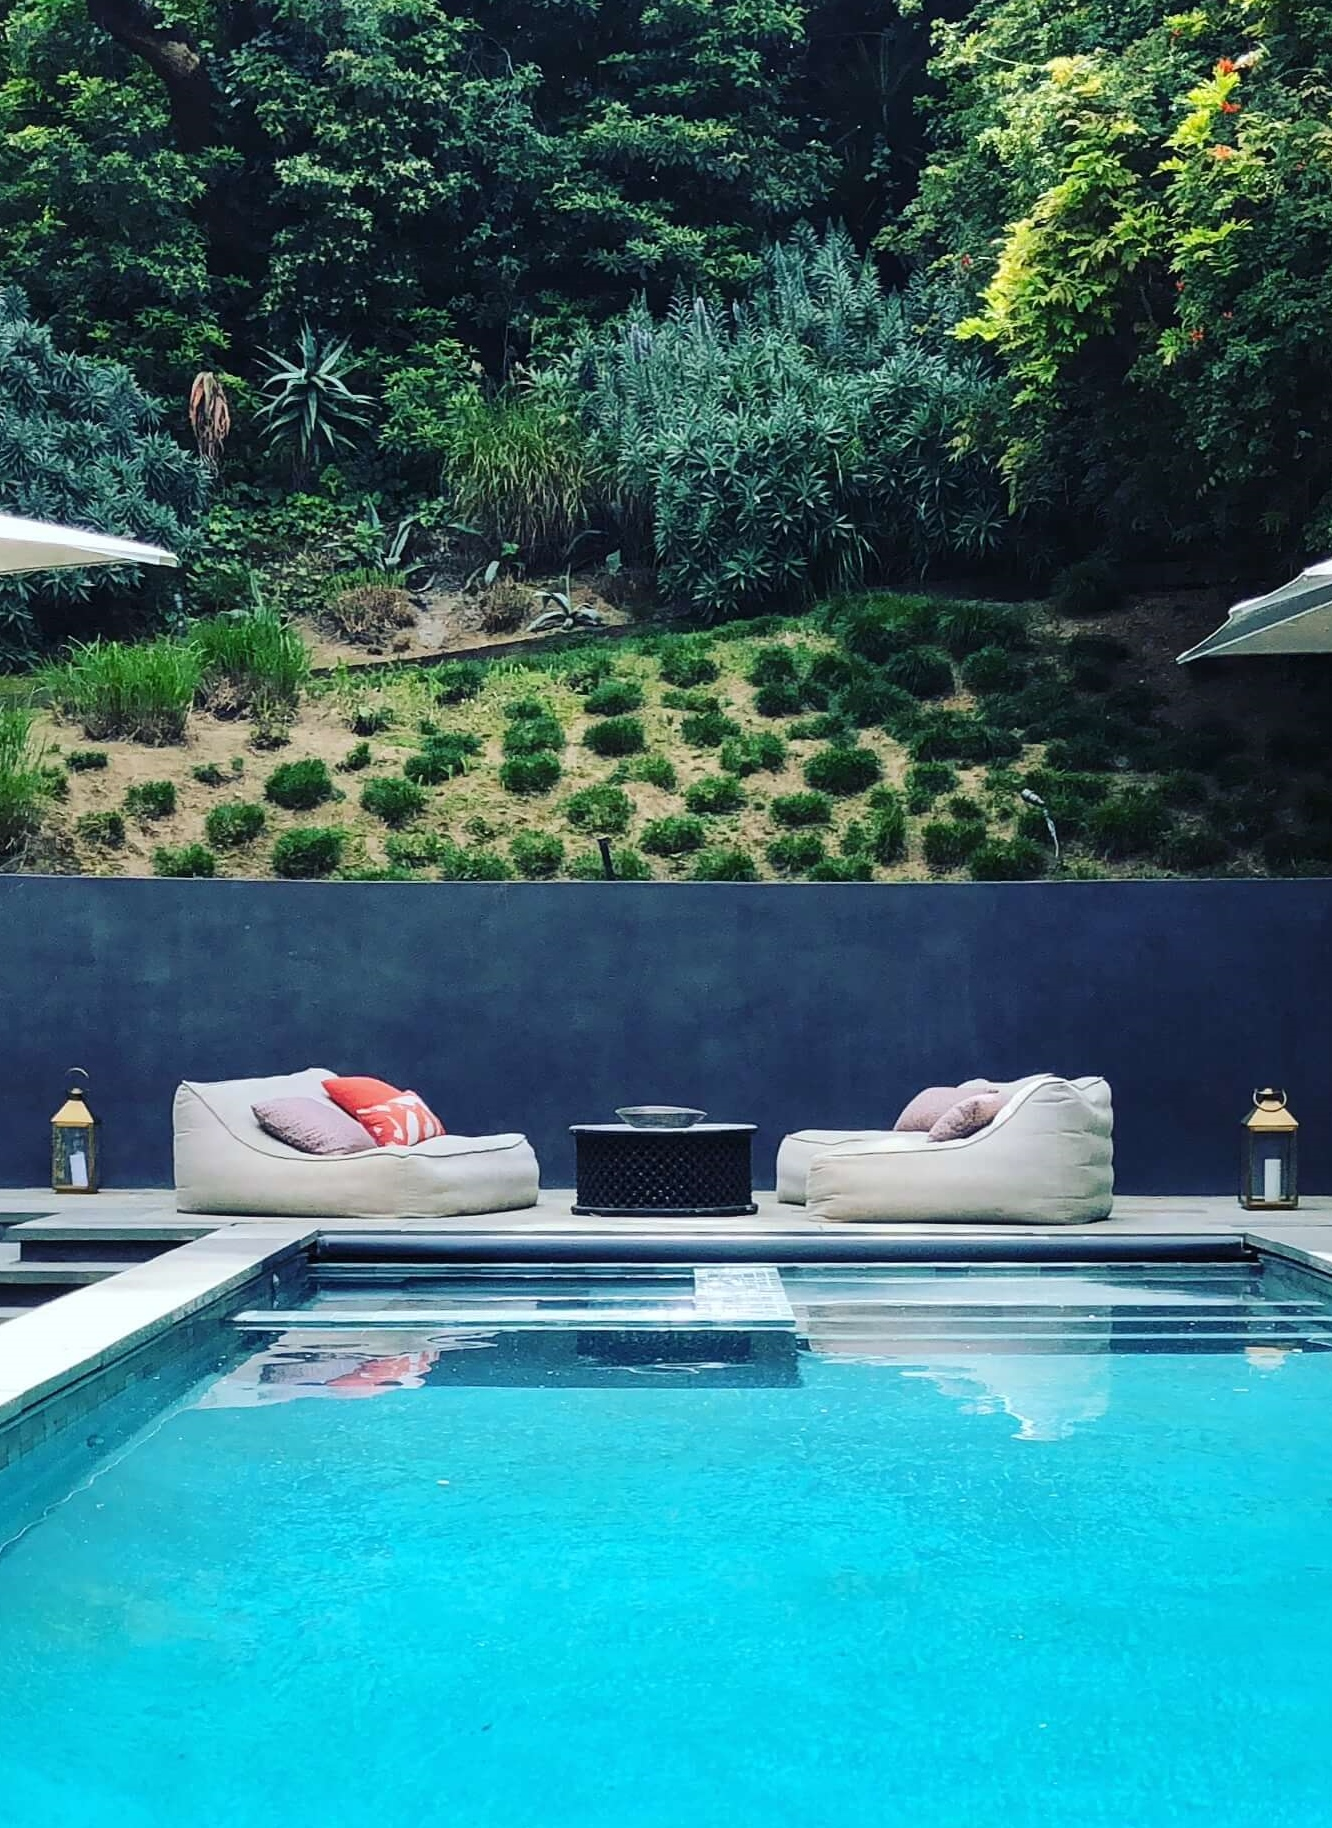 Poolside lounge seating at Dwell on Design home tour -  Assembledge+ Architects  #poolside